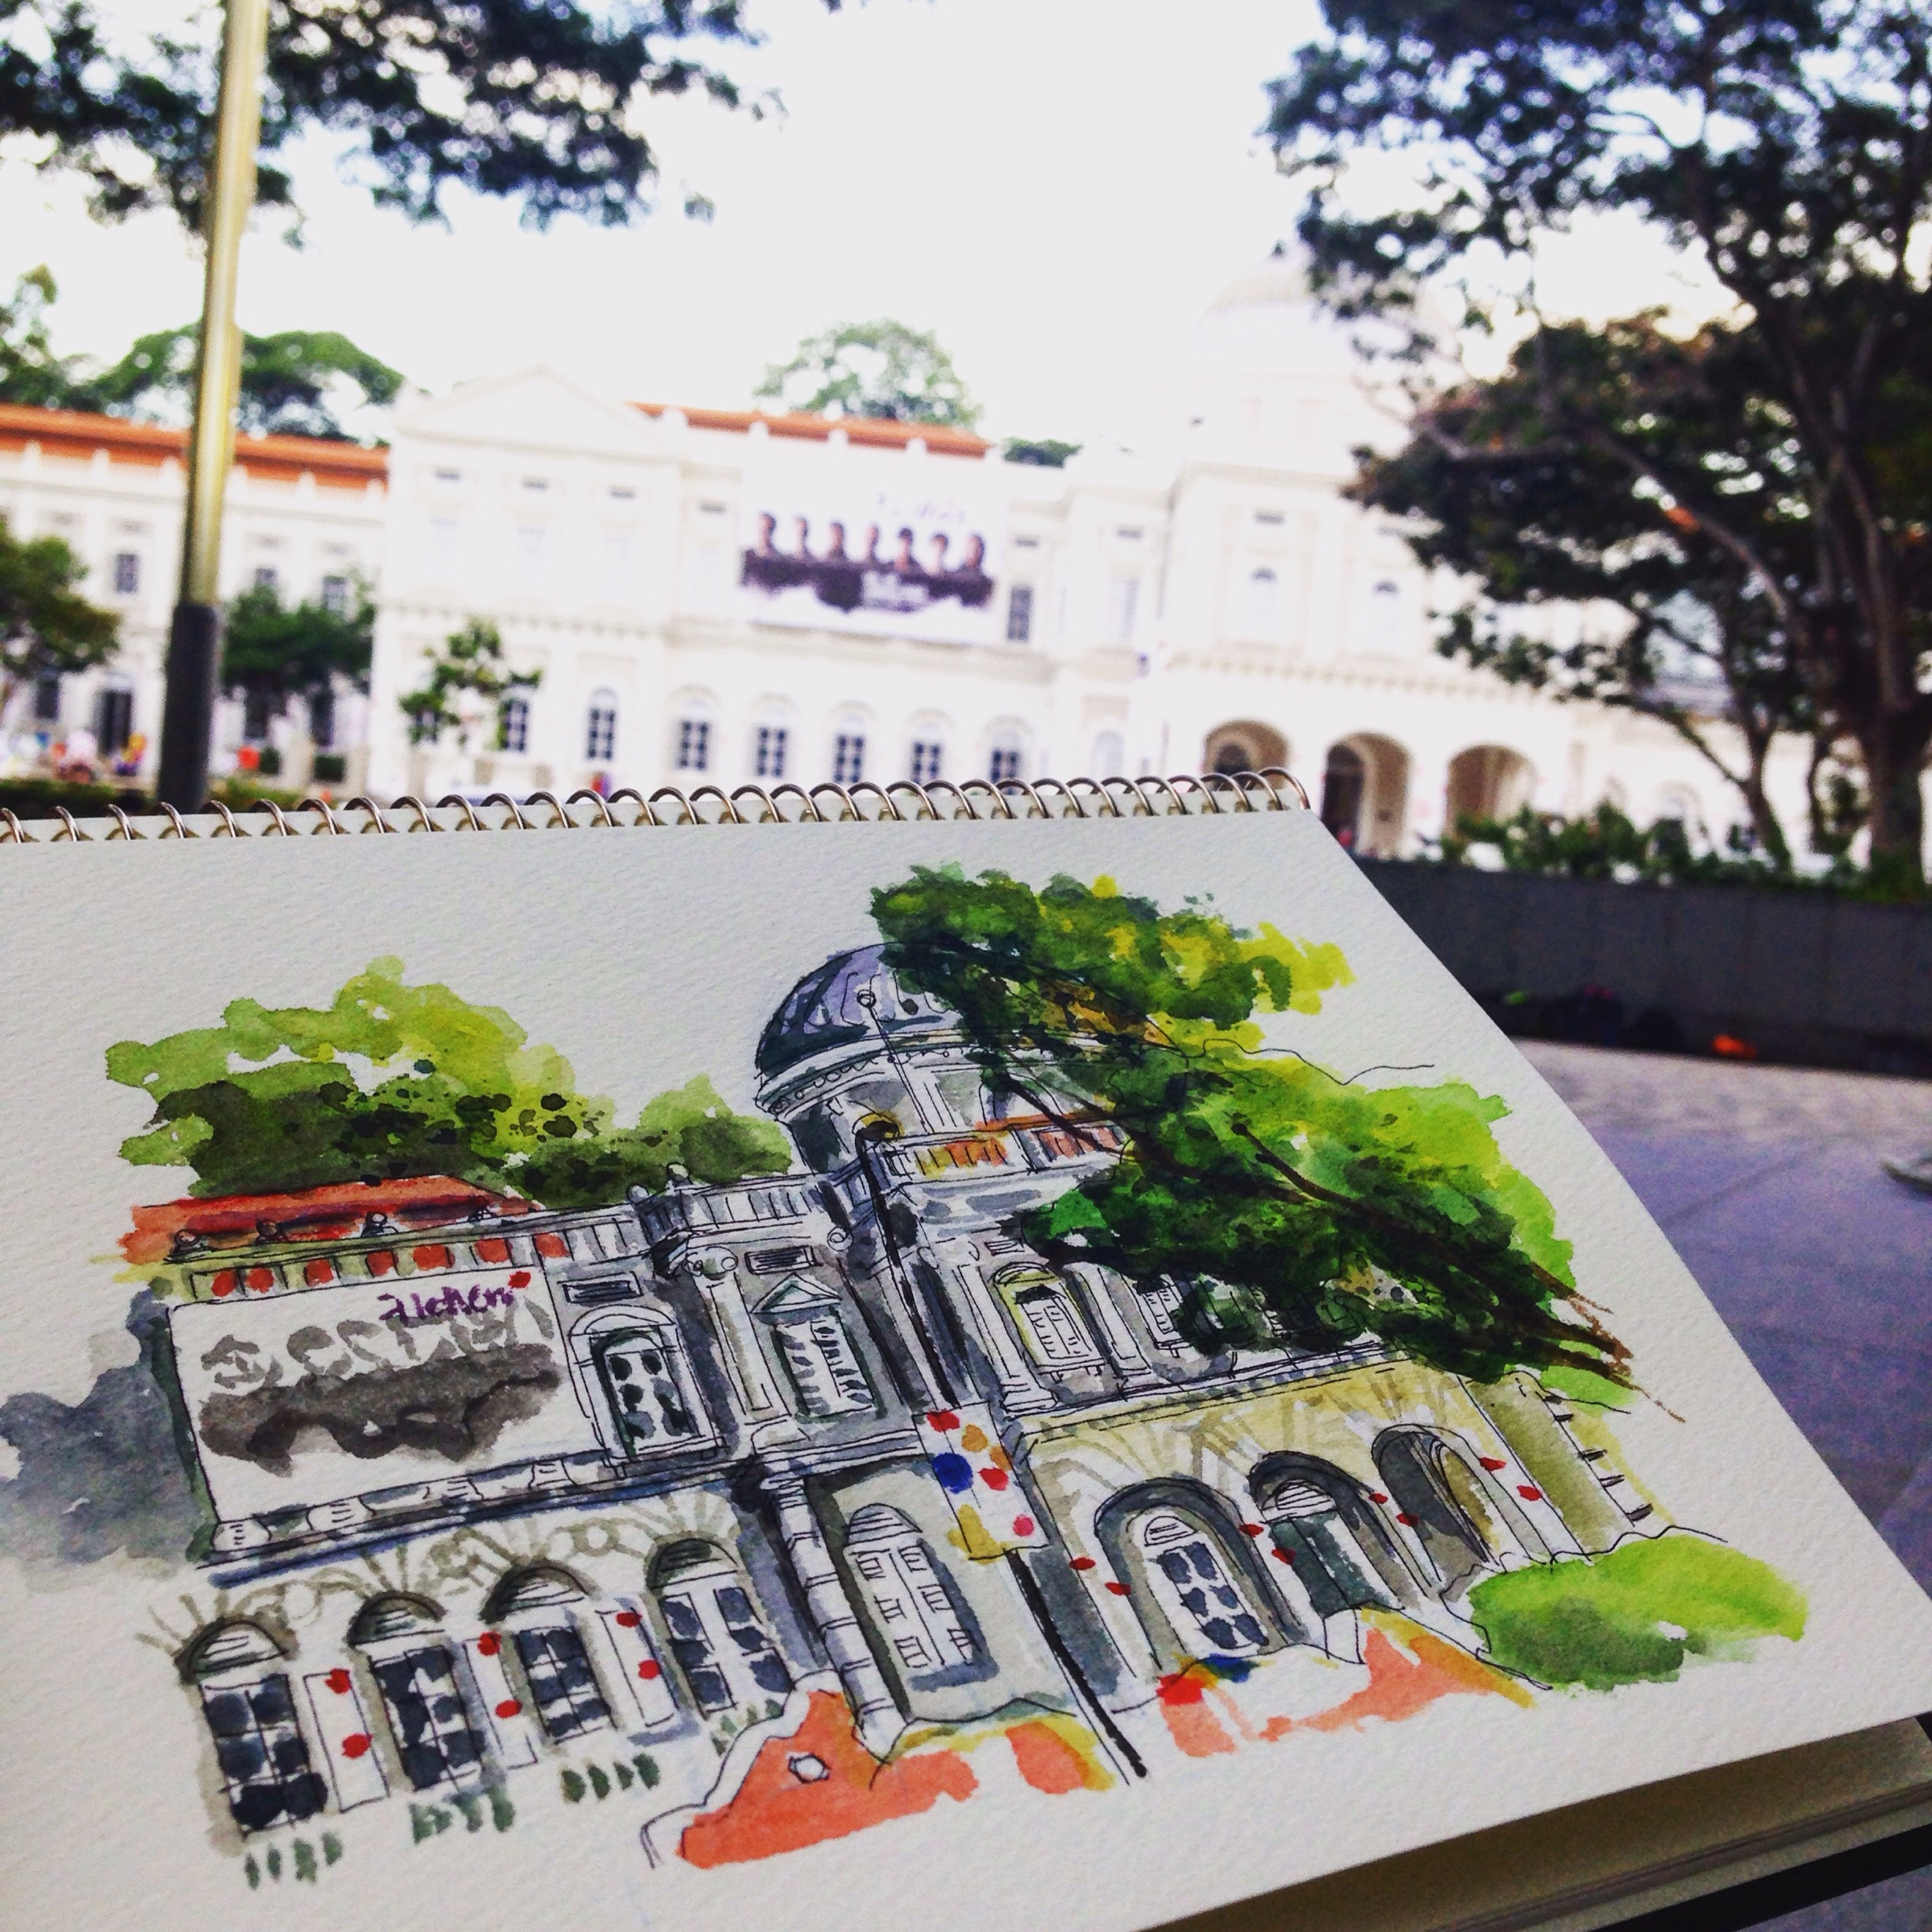 My last open sketchwalk at the SMU Open Lawn, facing the National Museum of Singapore.